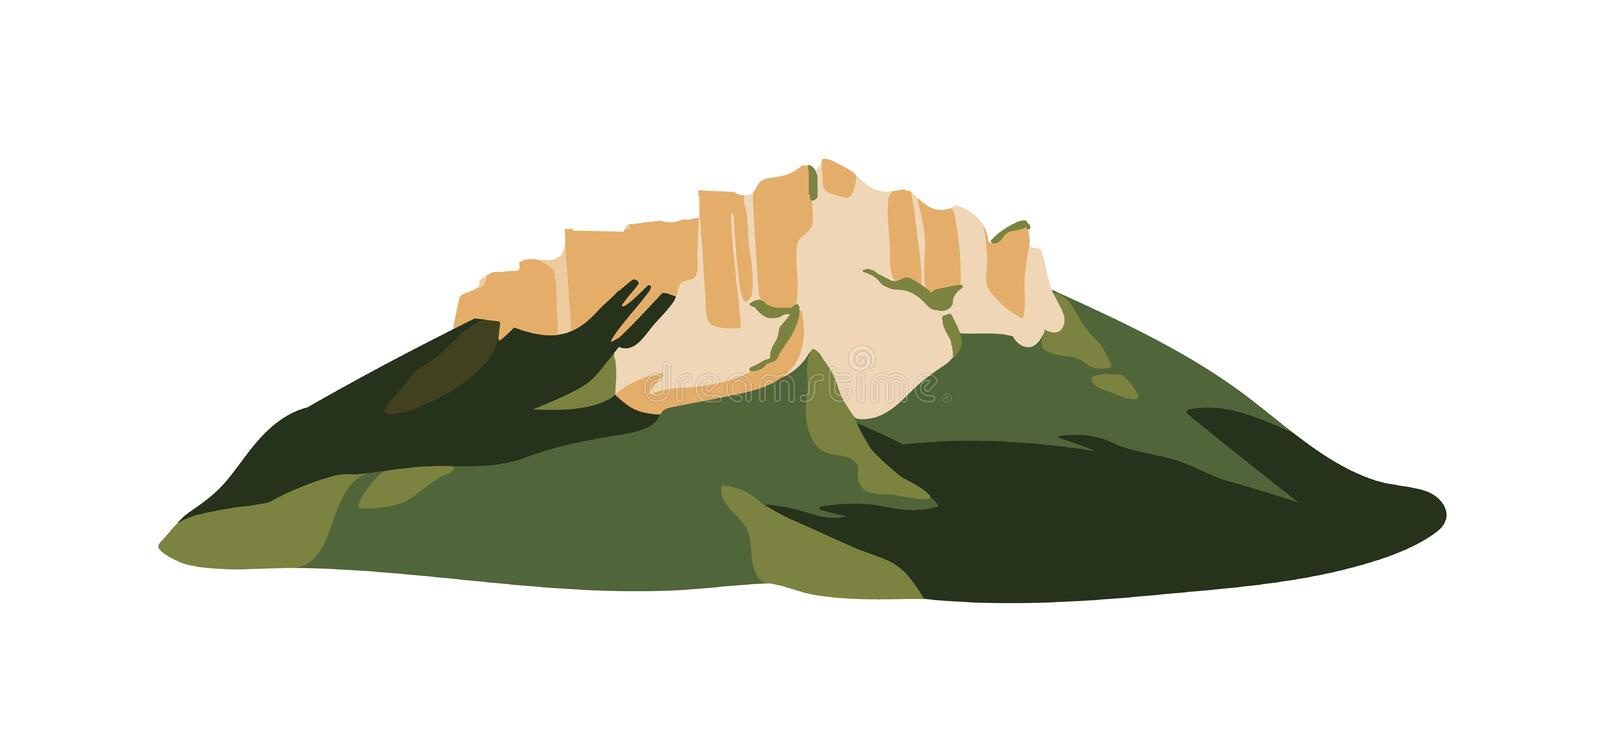 Mountain with rock formation on top of it isolated on white background. Rocky cliff or mount for adventure tourism and vector illustration